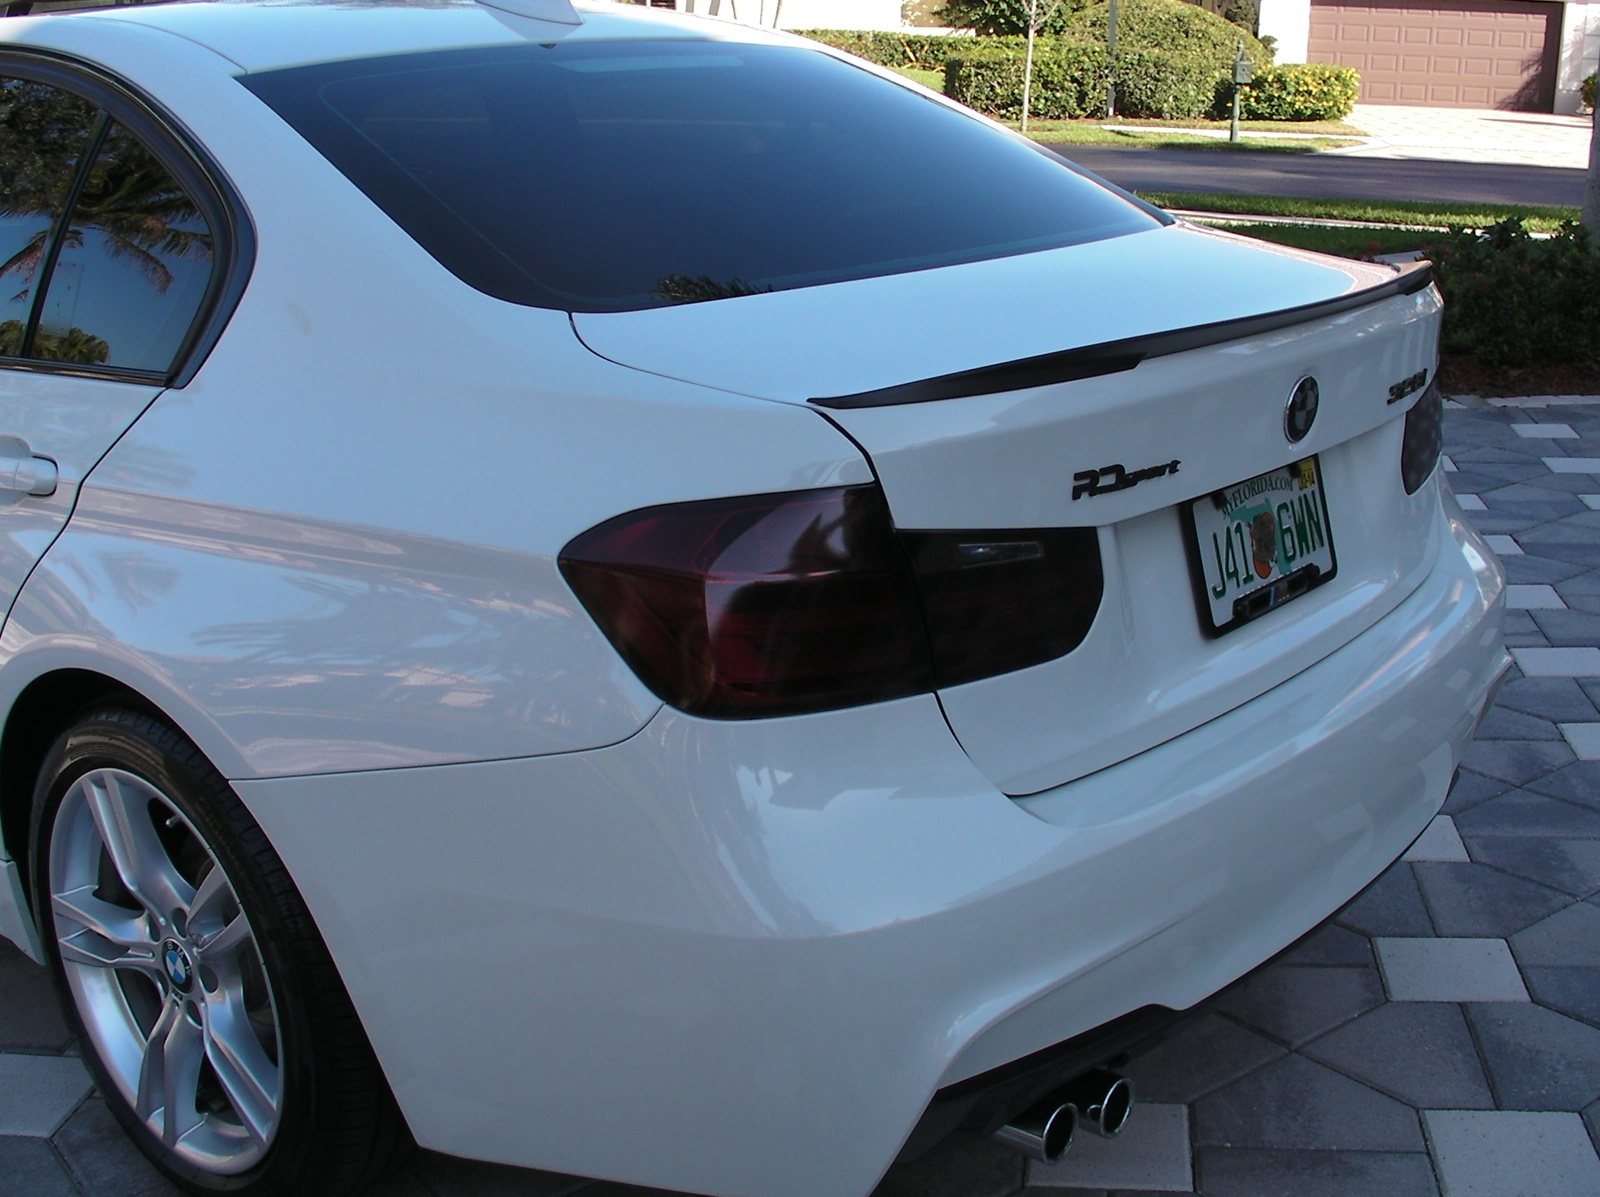 Taillight Tints Nice Touch Or Too Much